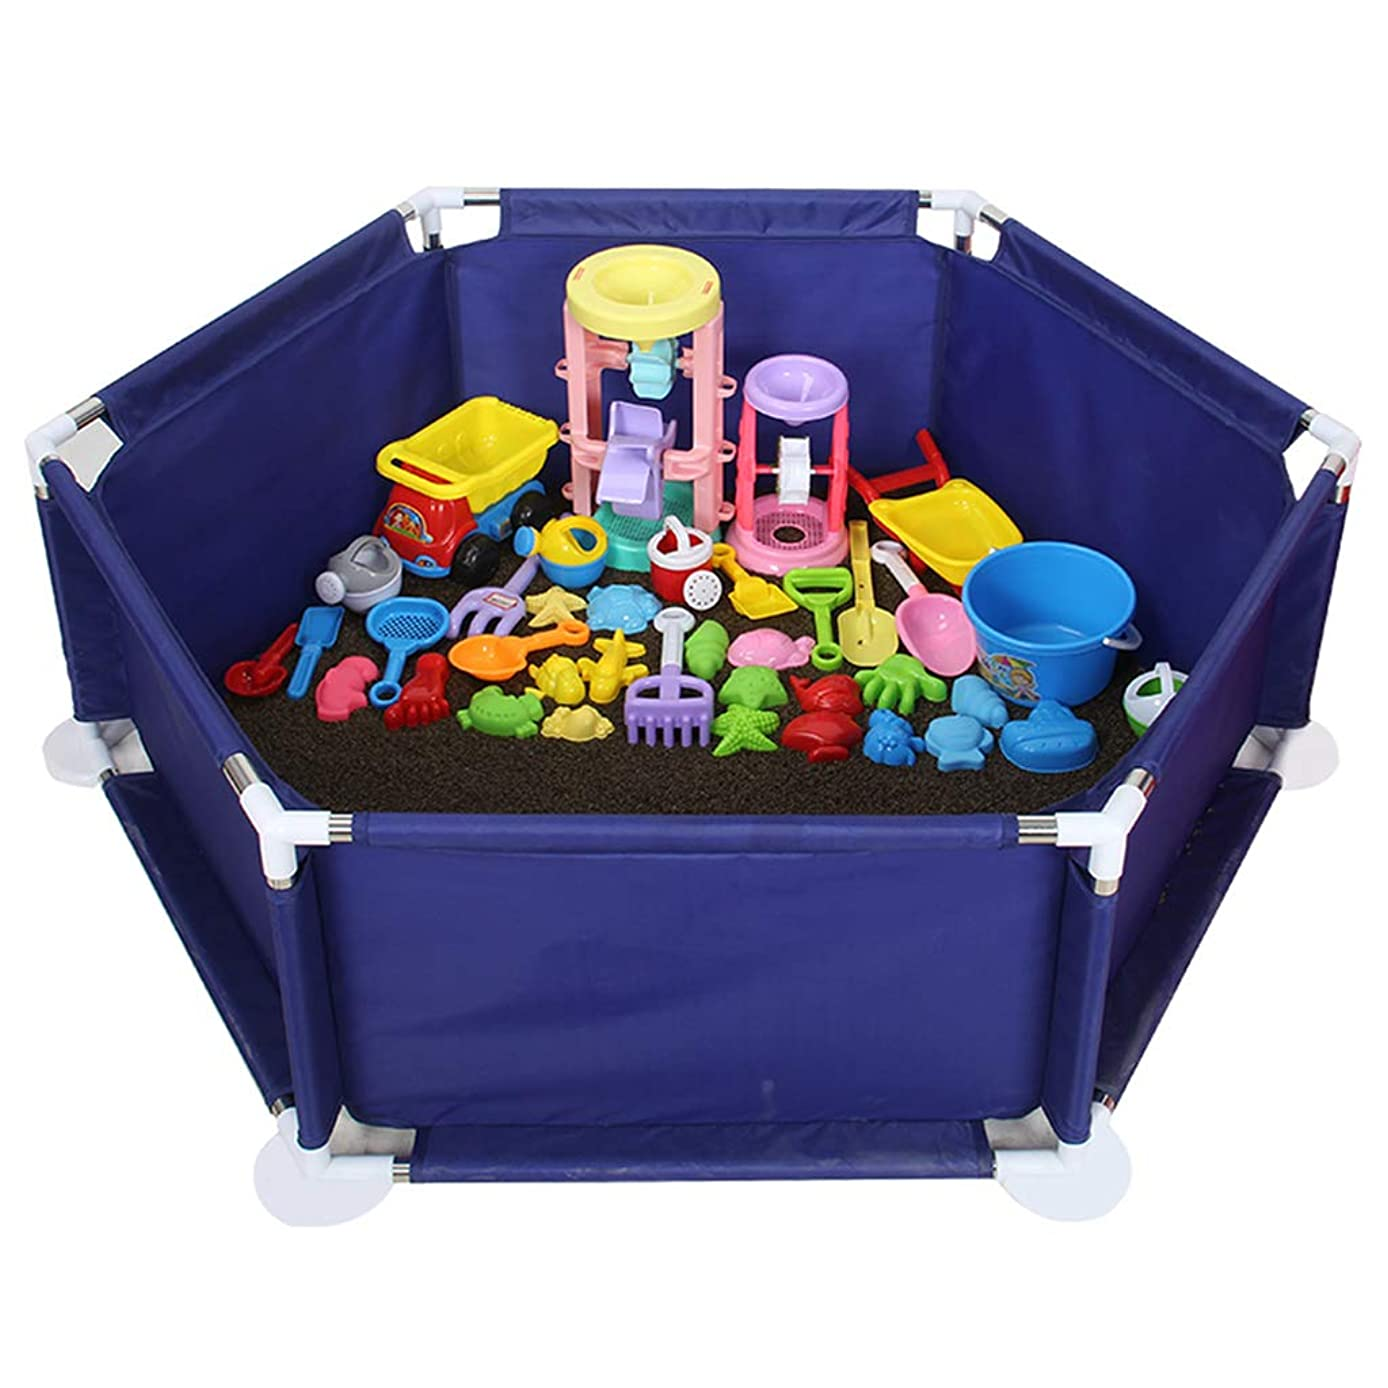 Baby Playpens Safety Playyard Tents Infant Fence Kids Activity Centre (30 Playballs are Included, 1 Hexagonal Pad)